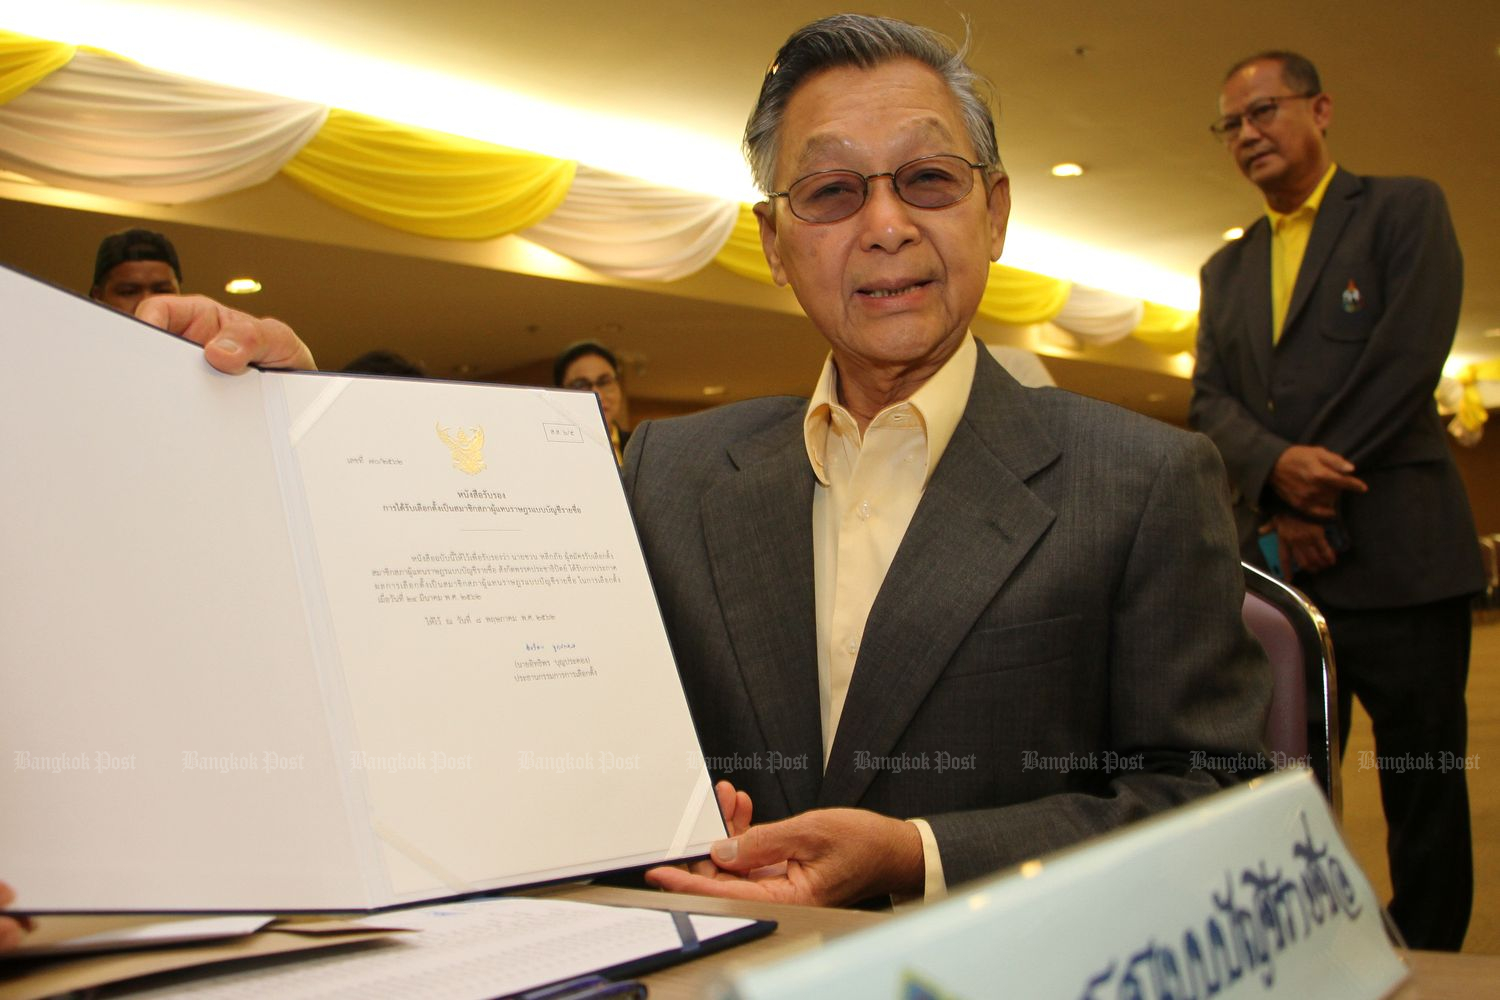 Former prime minister Chuan Leekpai shows a letter of endorsement from the Election Commmission at the EC office in Bangkok on Friday. (Photo by Tawatchai Kemgumnerd)